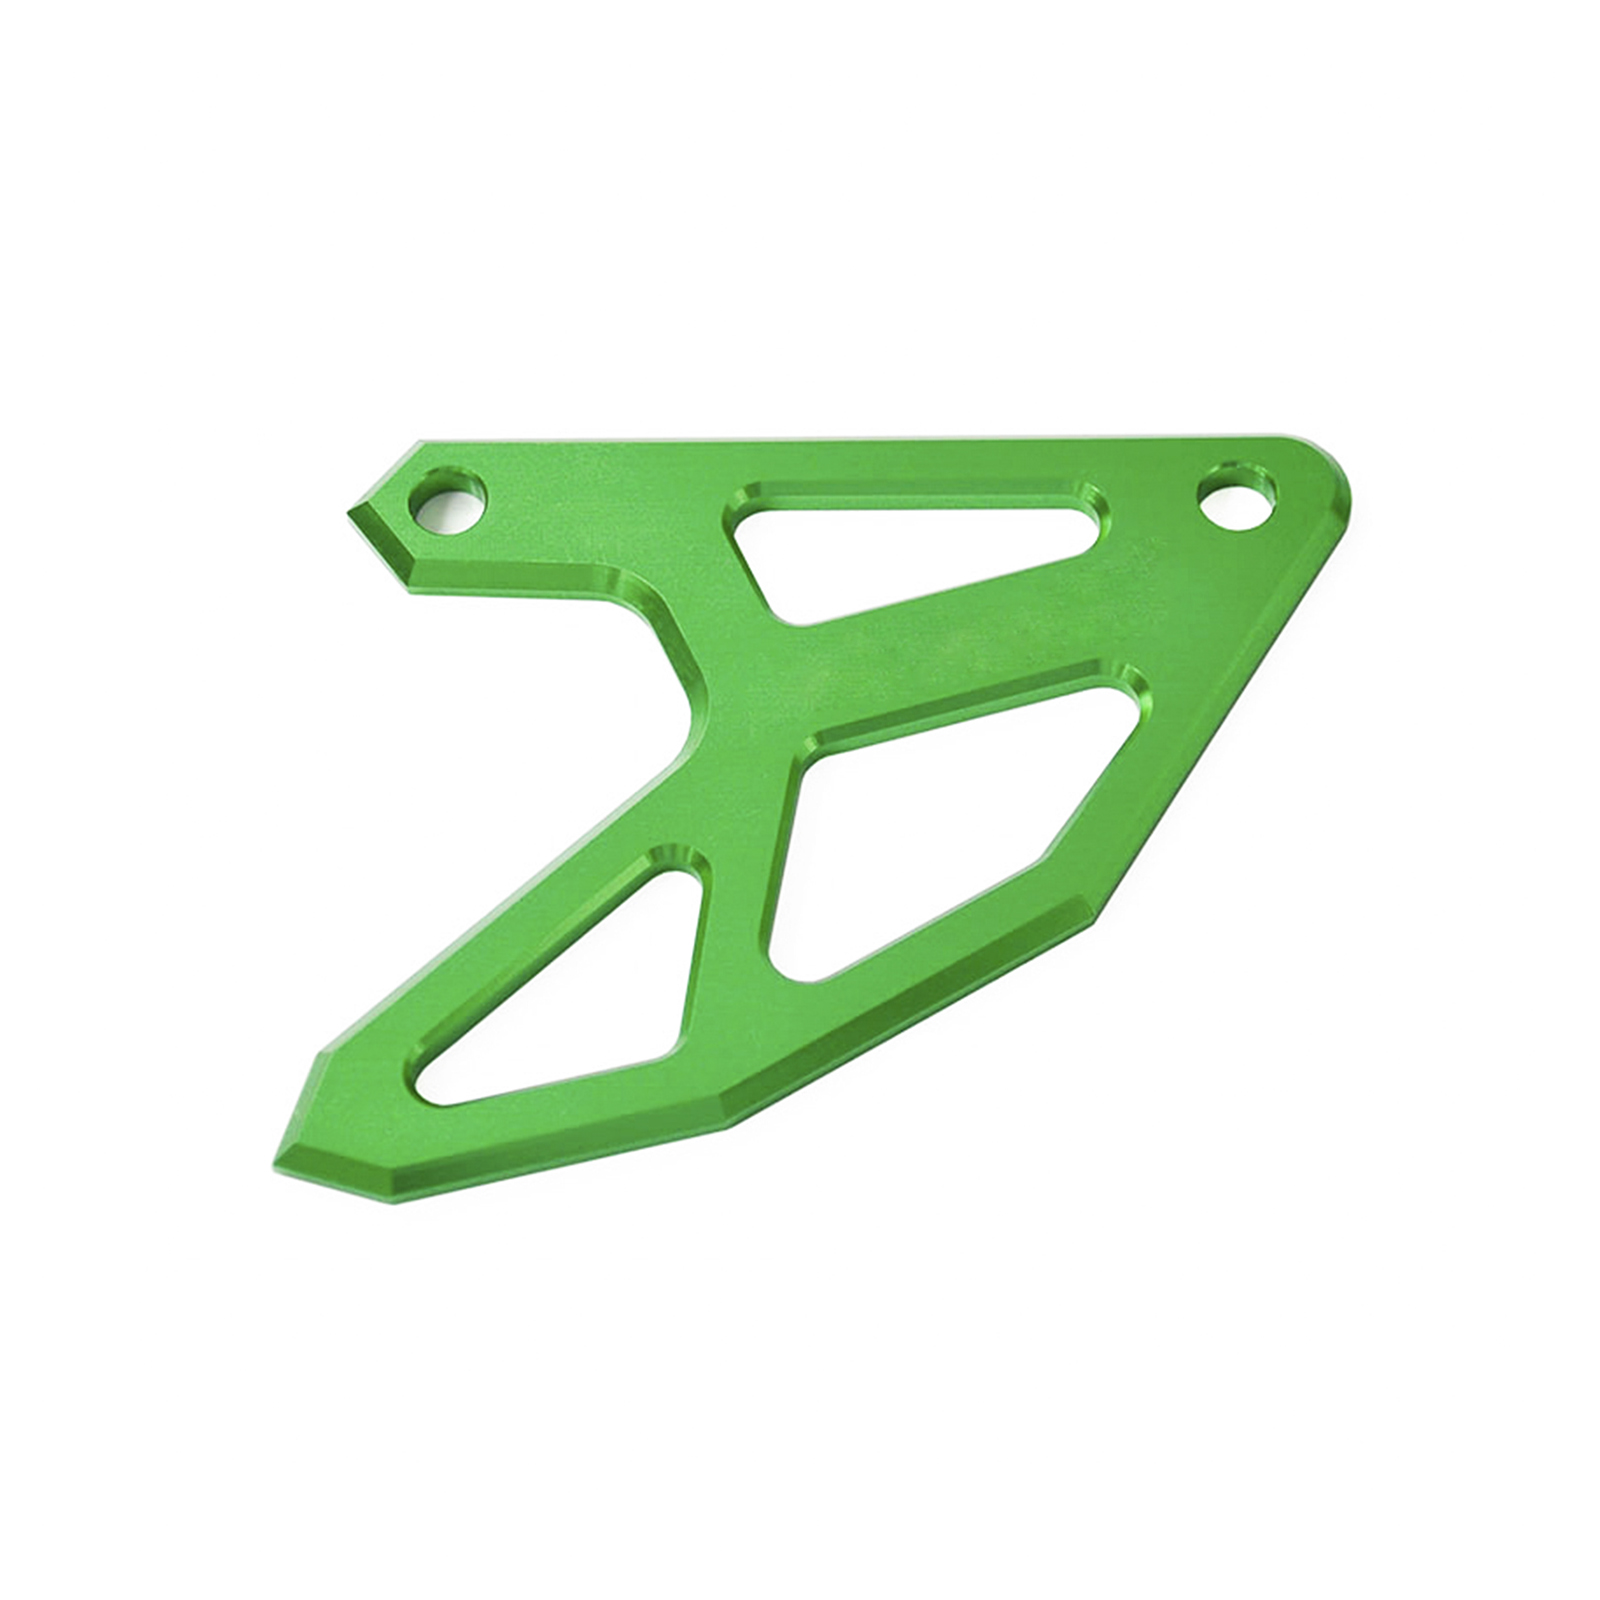 CNC Billet Rear Brake Disc Guard Potector For Kawasaki KX125 KX250 KX250F KX450F KLX450R Green